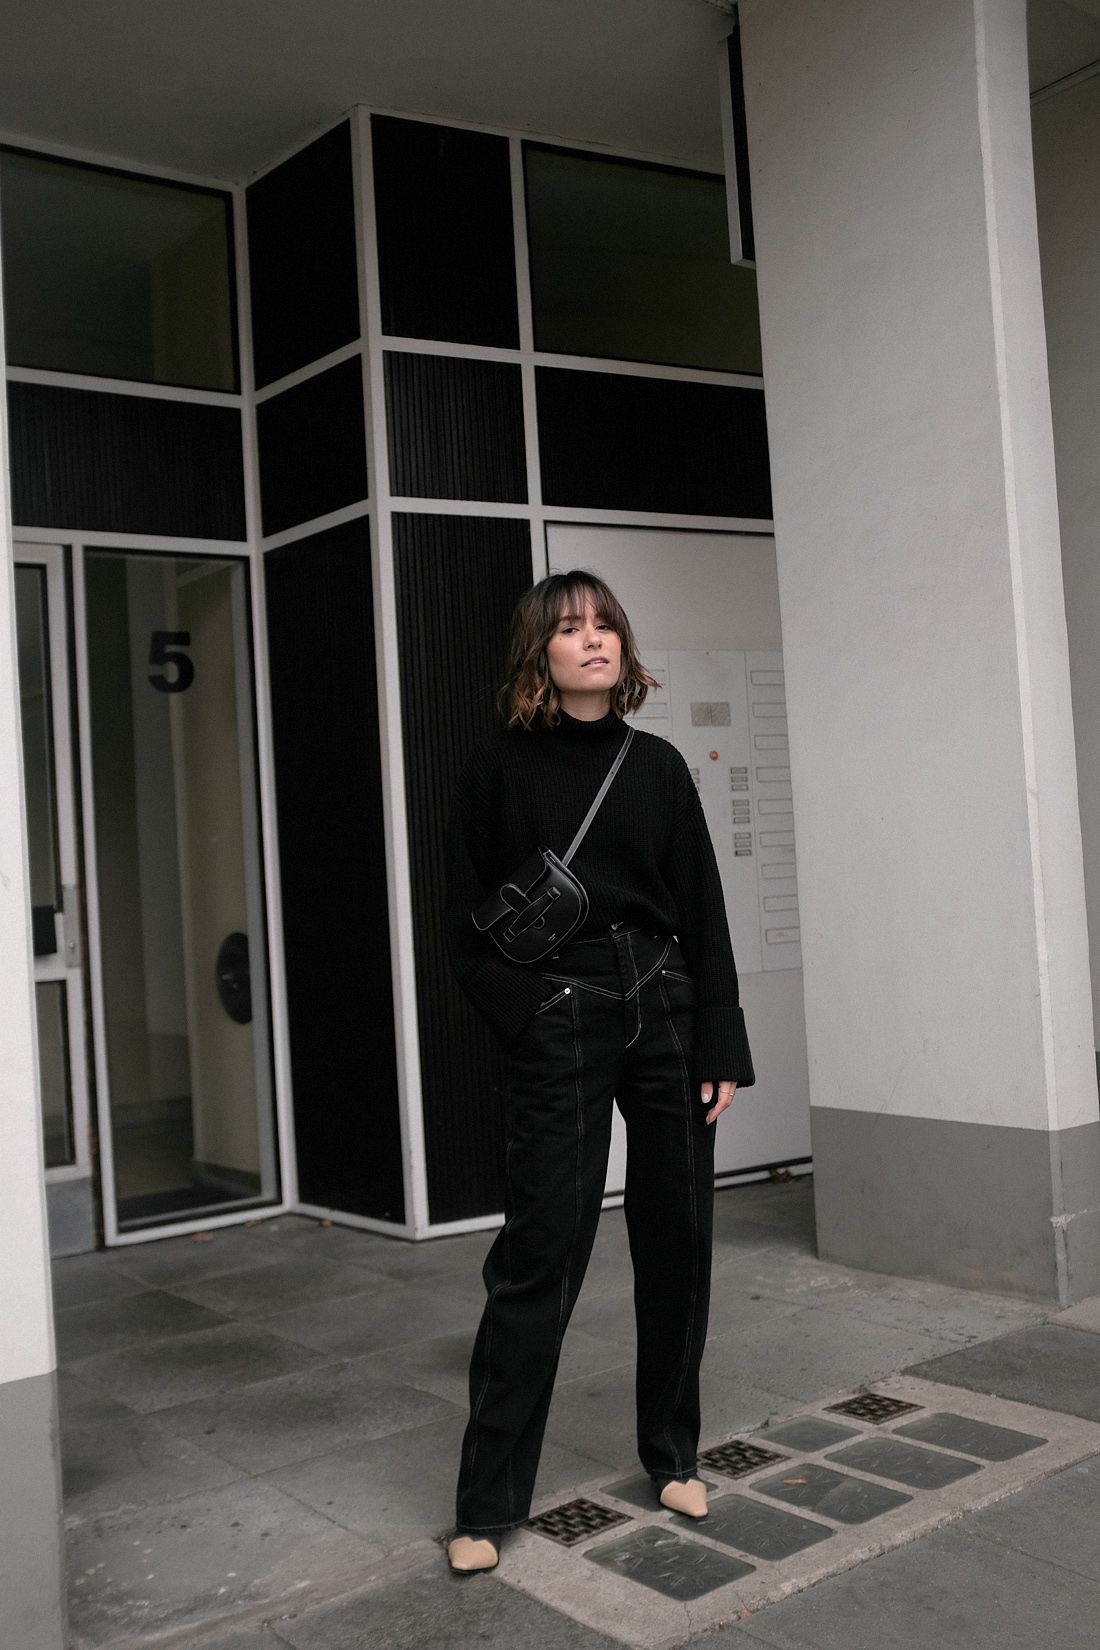 Nisi is wearing: Isabel Marant jeans, Céline Mini Symmetrical Bag, Céline  Madame boots, Black turtleneck knit